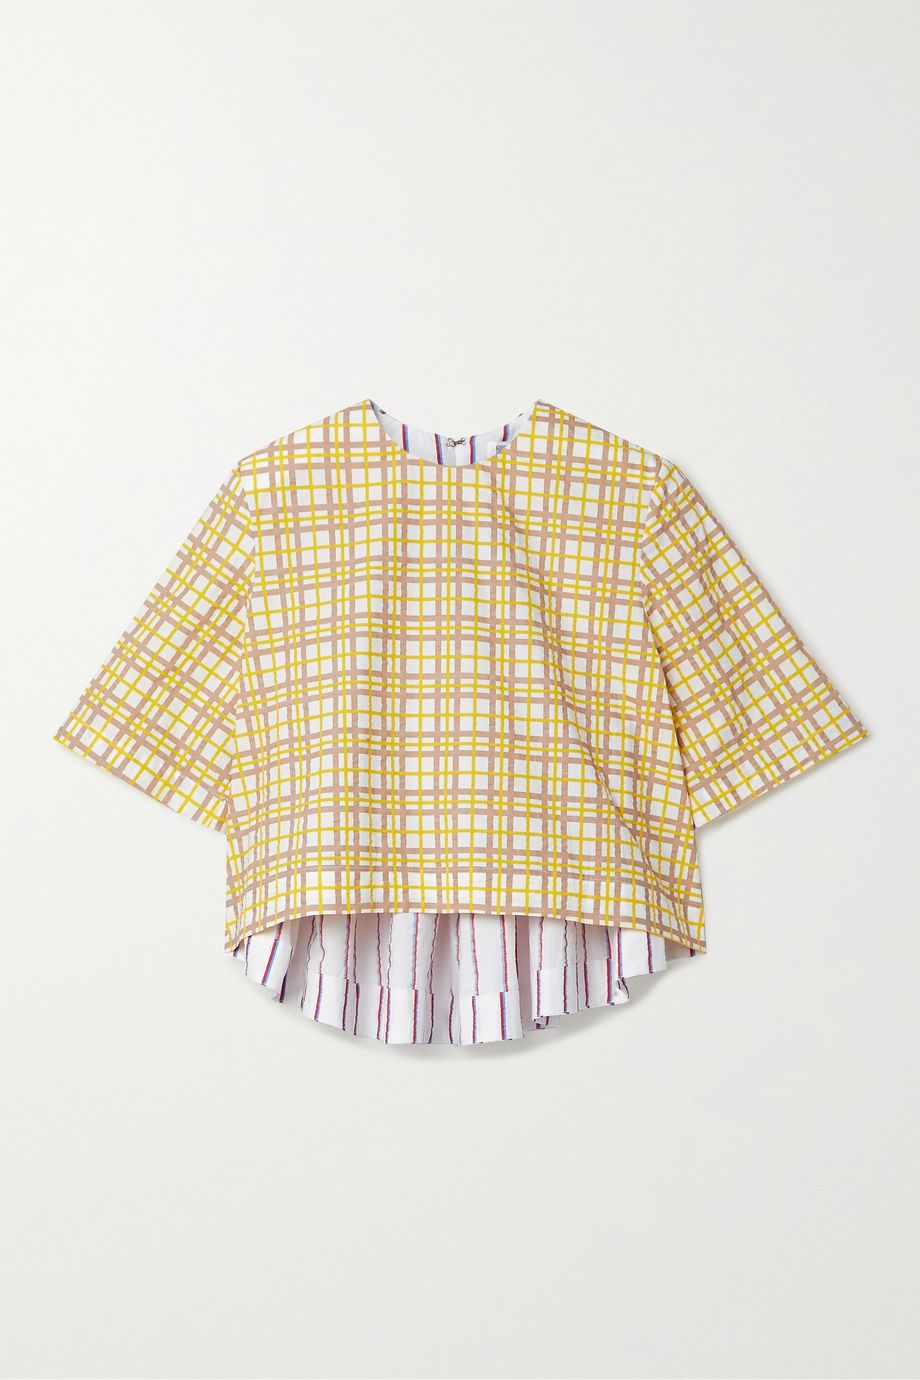 Rosie Assoulin Party In The Back cropped paneled cotton-seersucker top